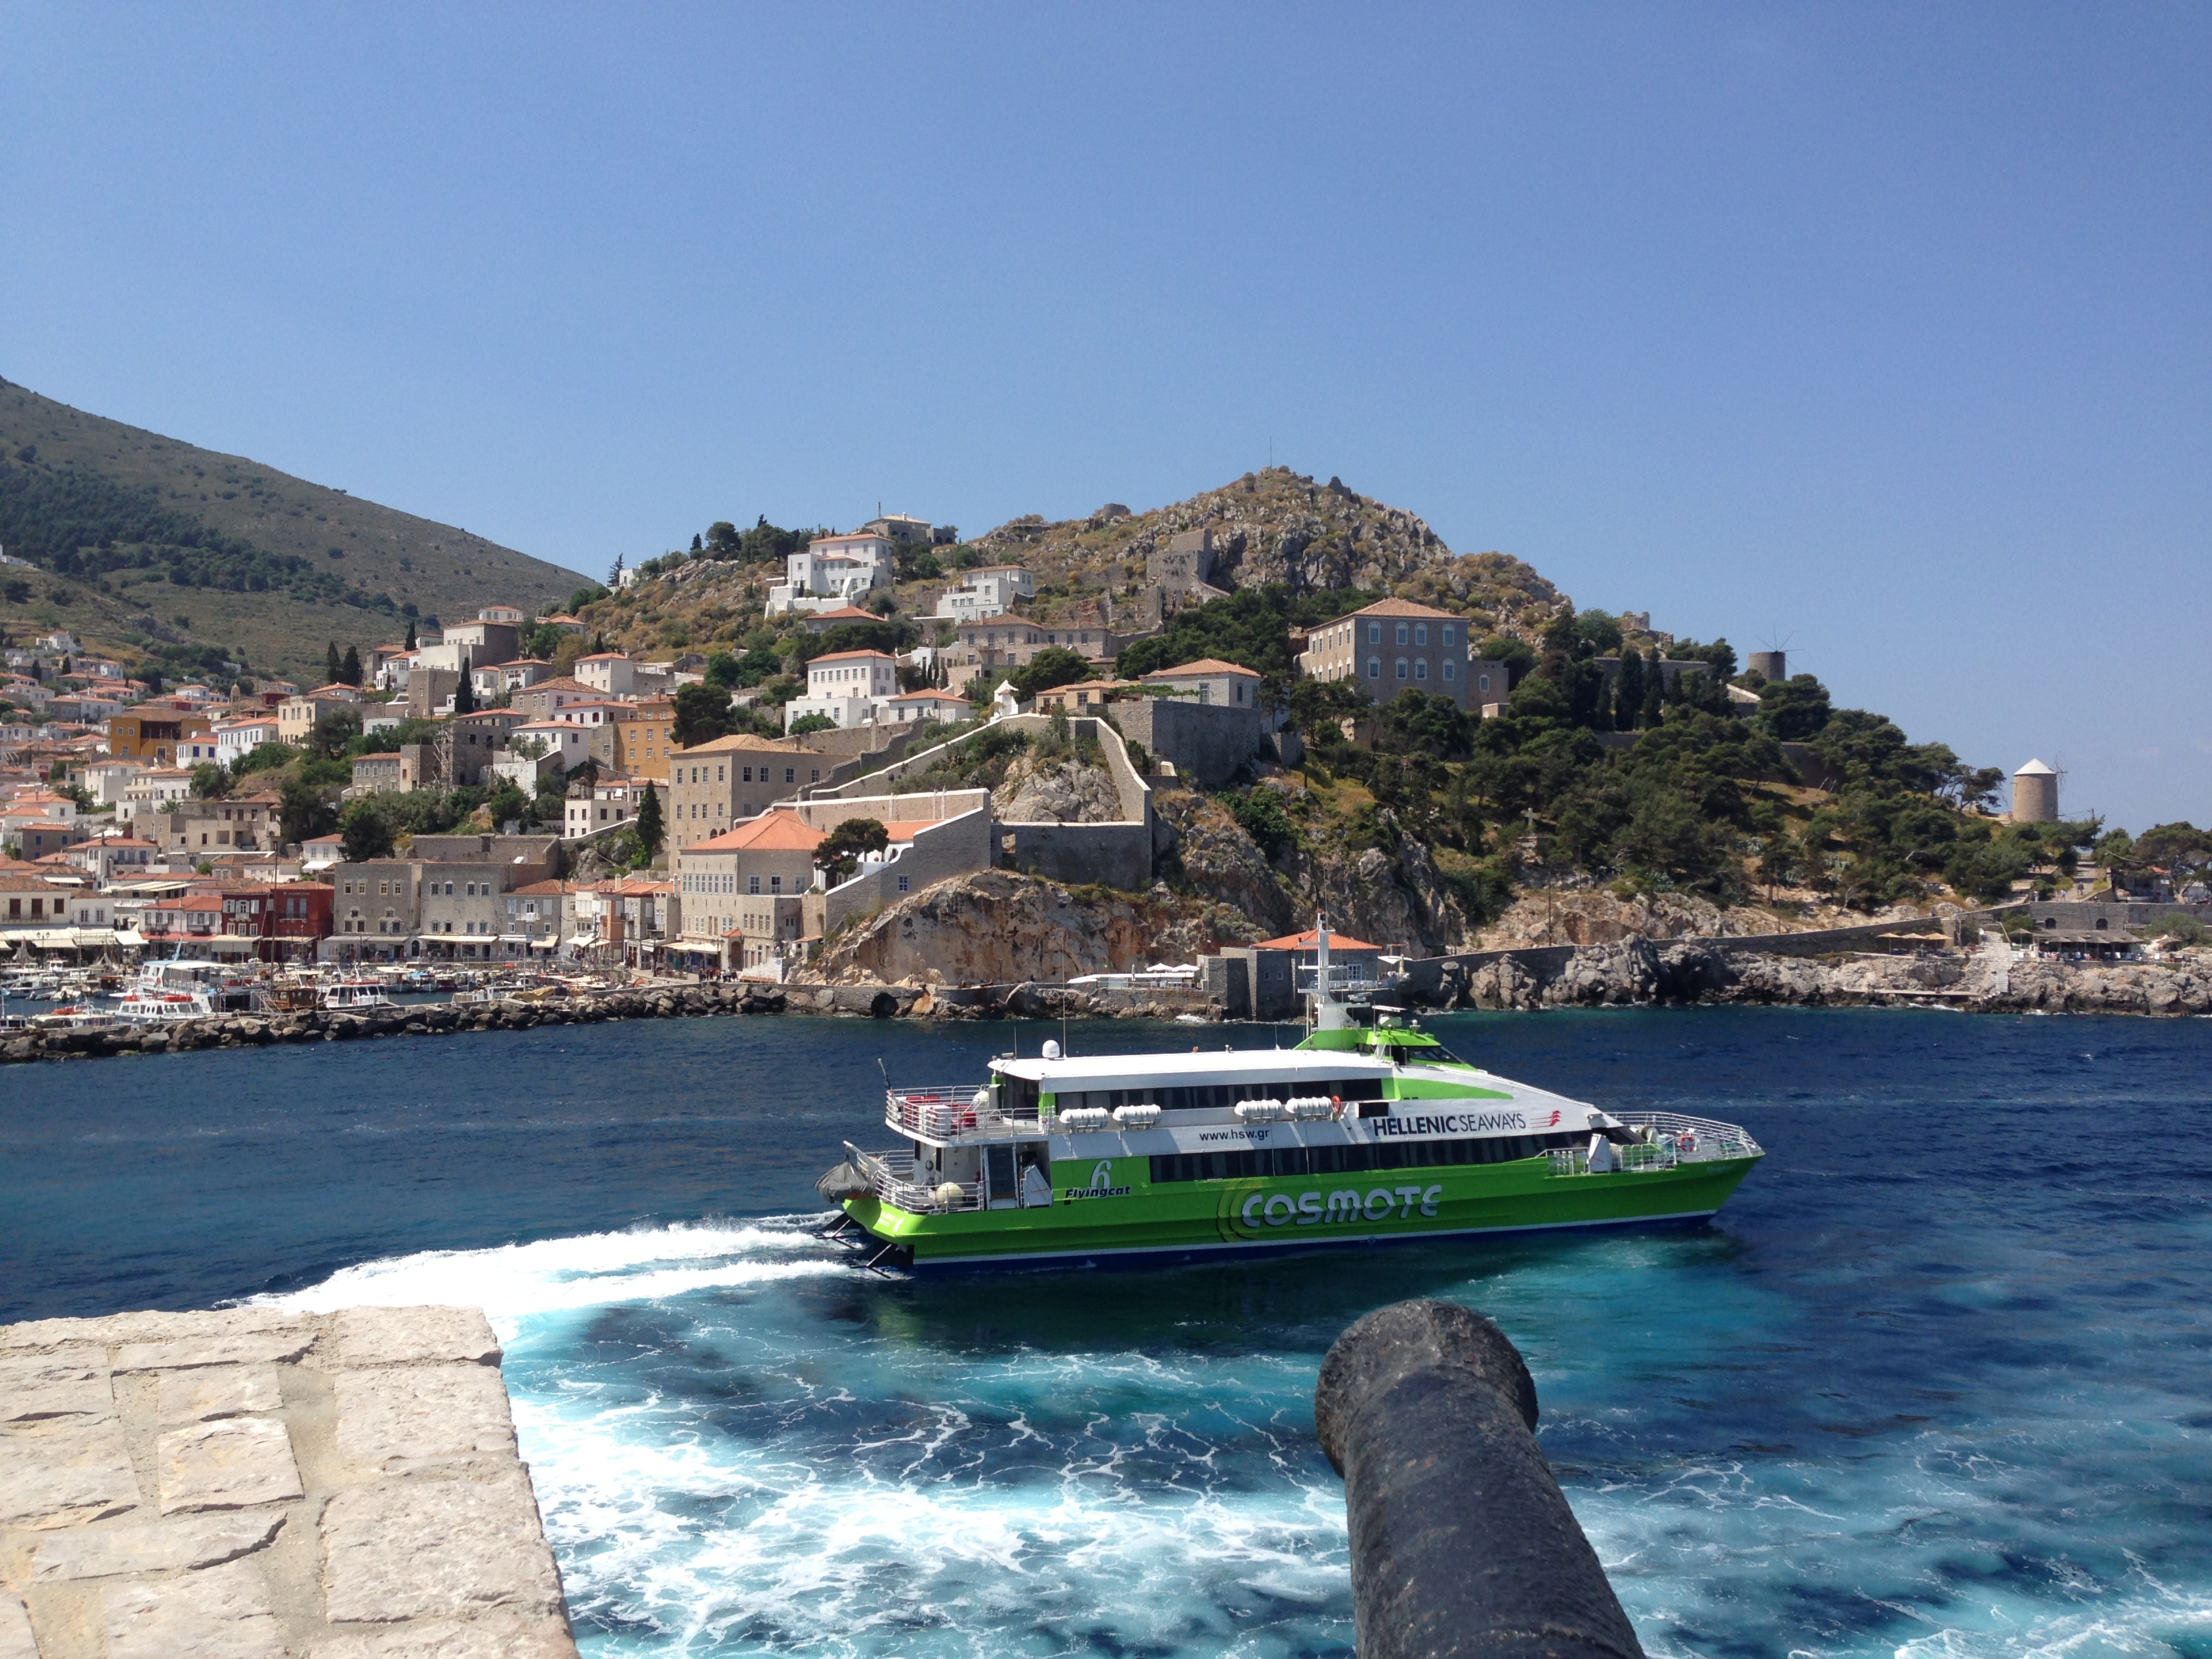 The Flying Dolphin leaving the Port of Hydra Photo by Francesca Muir